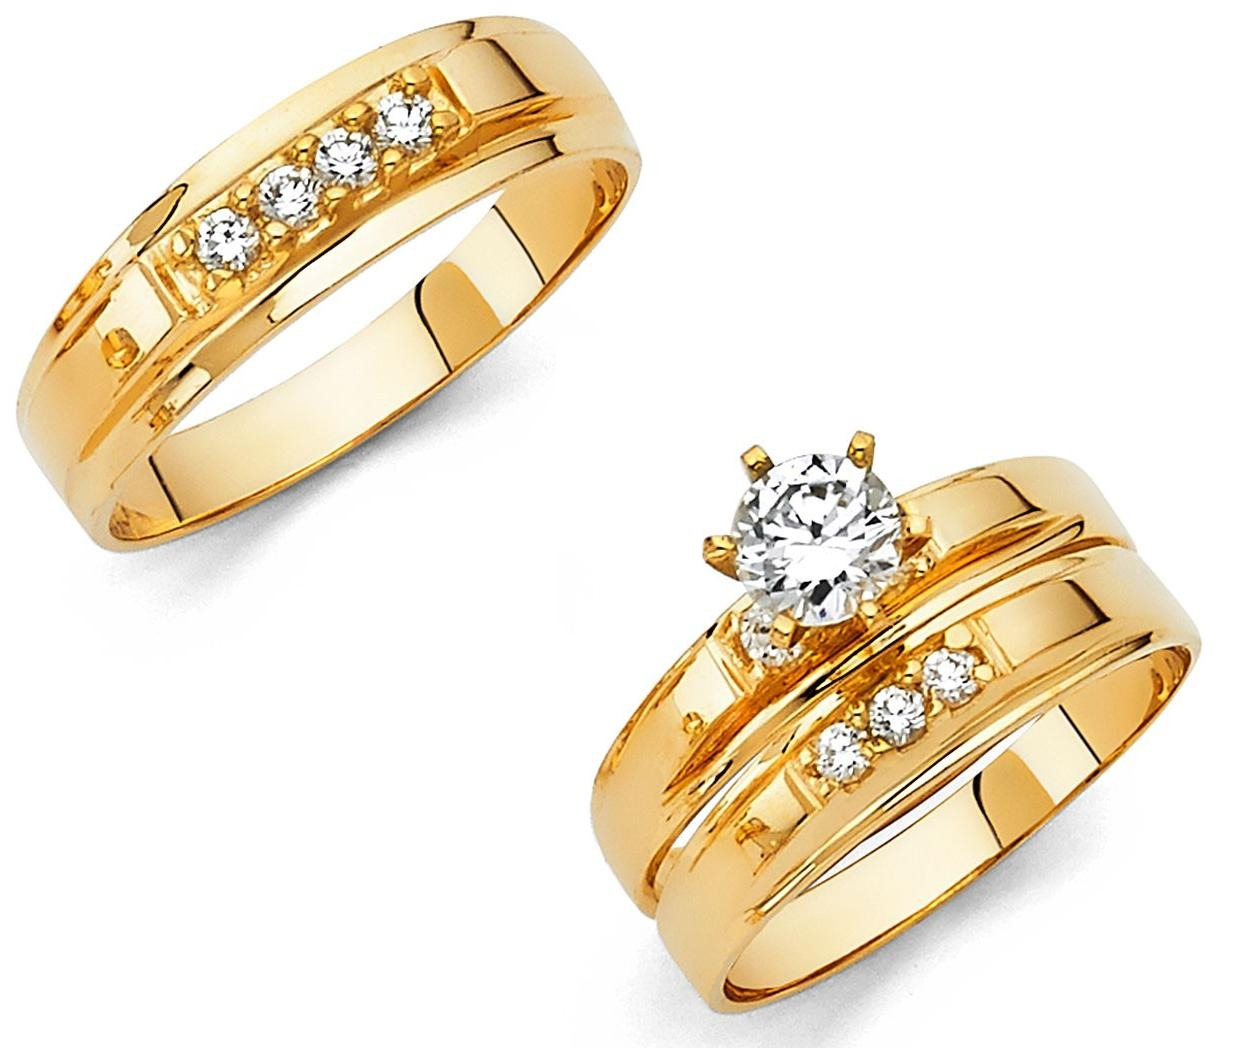 14k solid yellow italian gold wedding band bridal solitaire engagement ring set - Gold Wedding Ring Sets